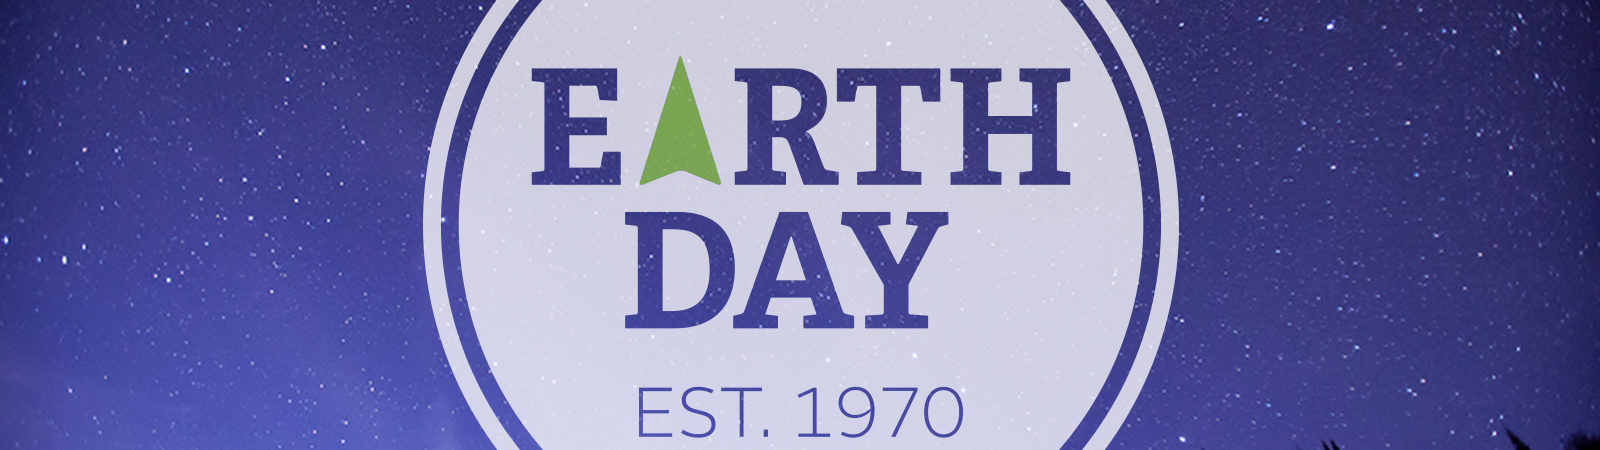 Earth Day badge over night sky